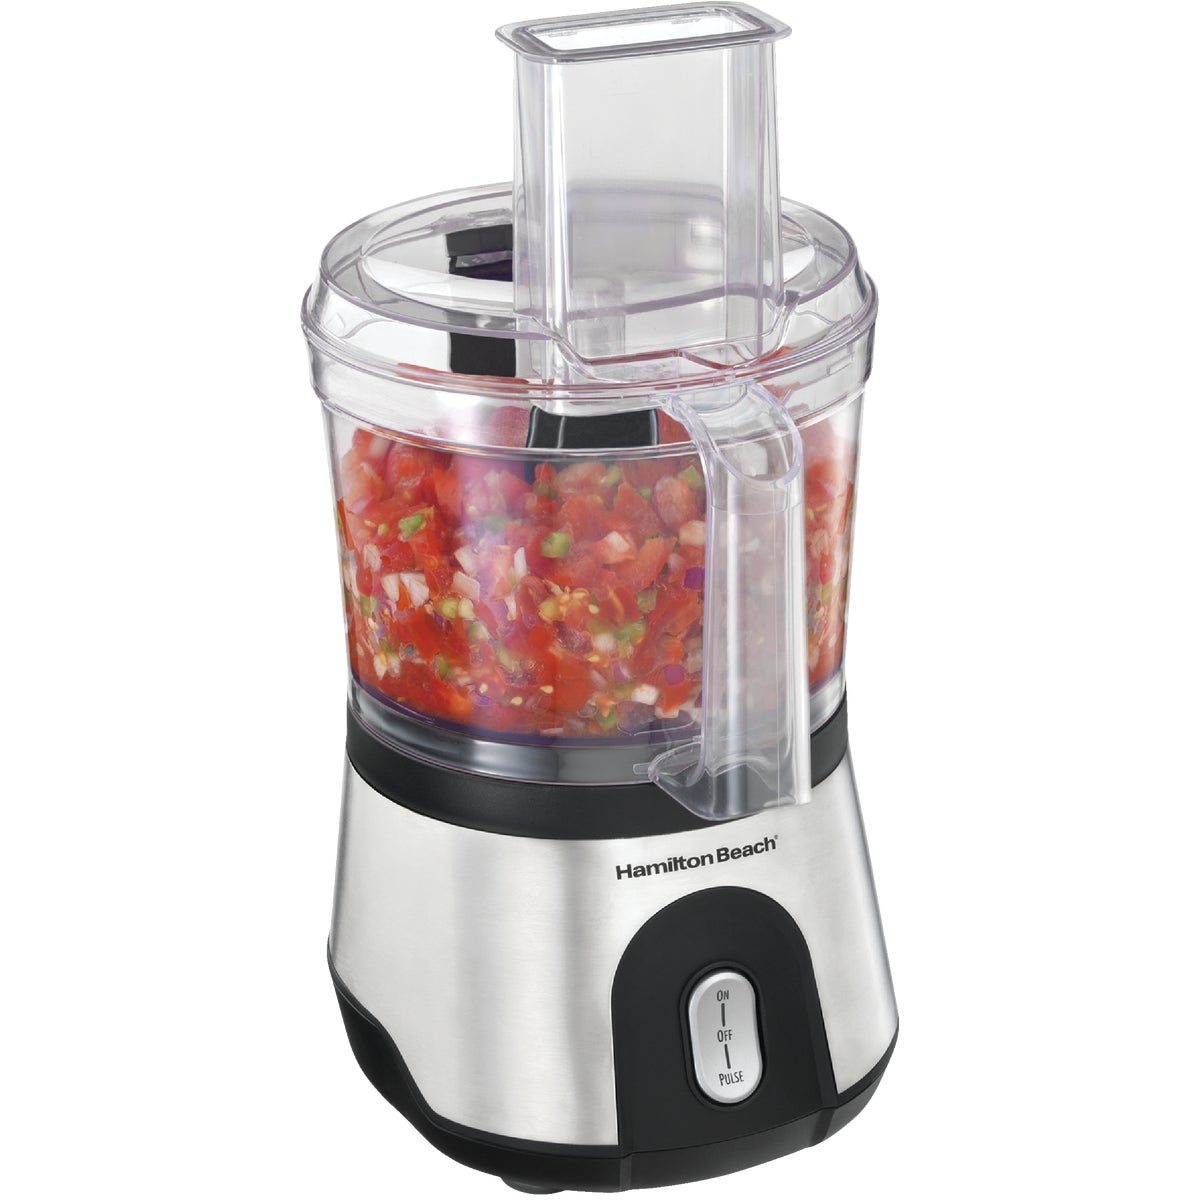 10 SP FOOD PROCESSOR - 70760 by Hamilton Beach Brand